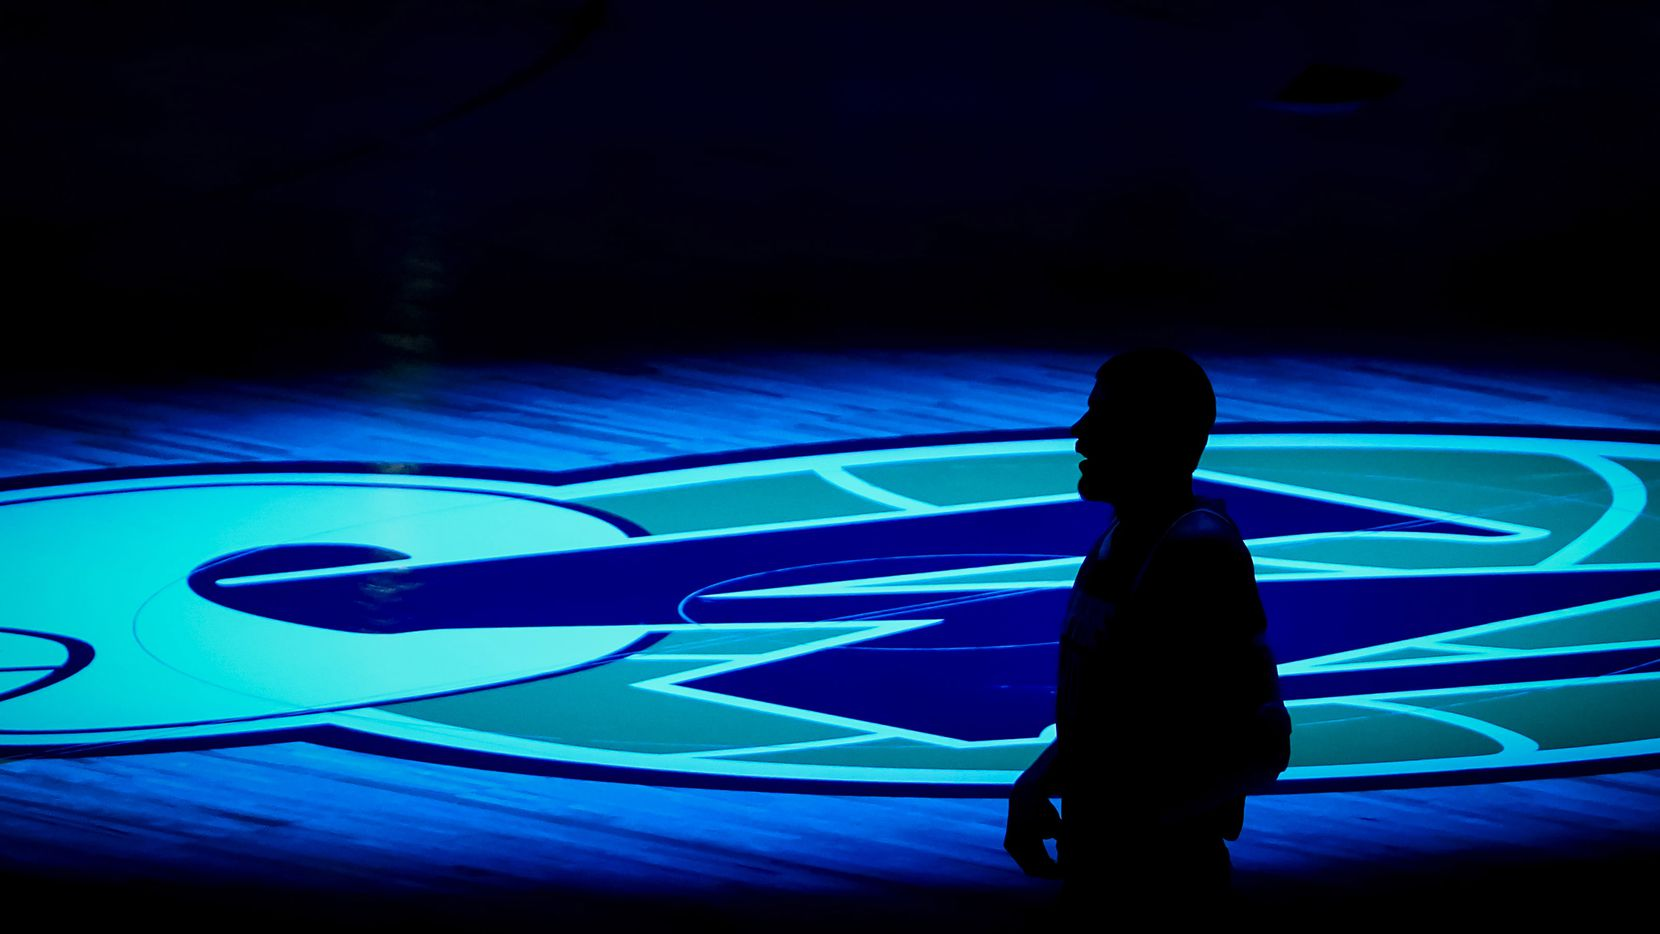 A player is silhouetted against the Dallas Mavericks logo before an NBA basketball game at American Airlines Center on Wednesday, March 17, 2021, in Dallas.